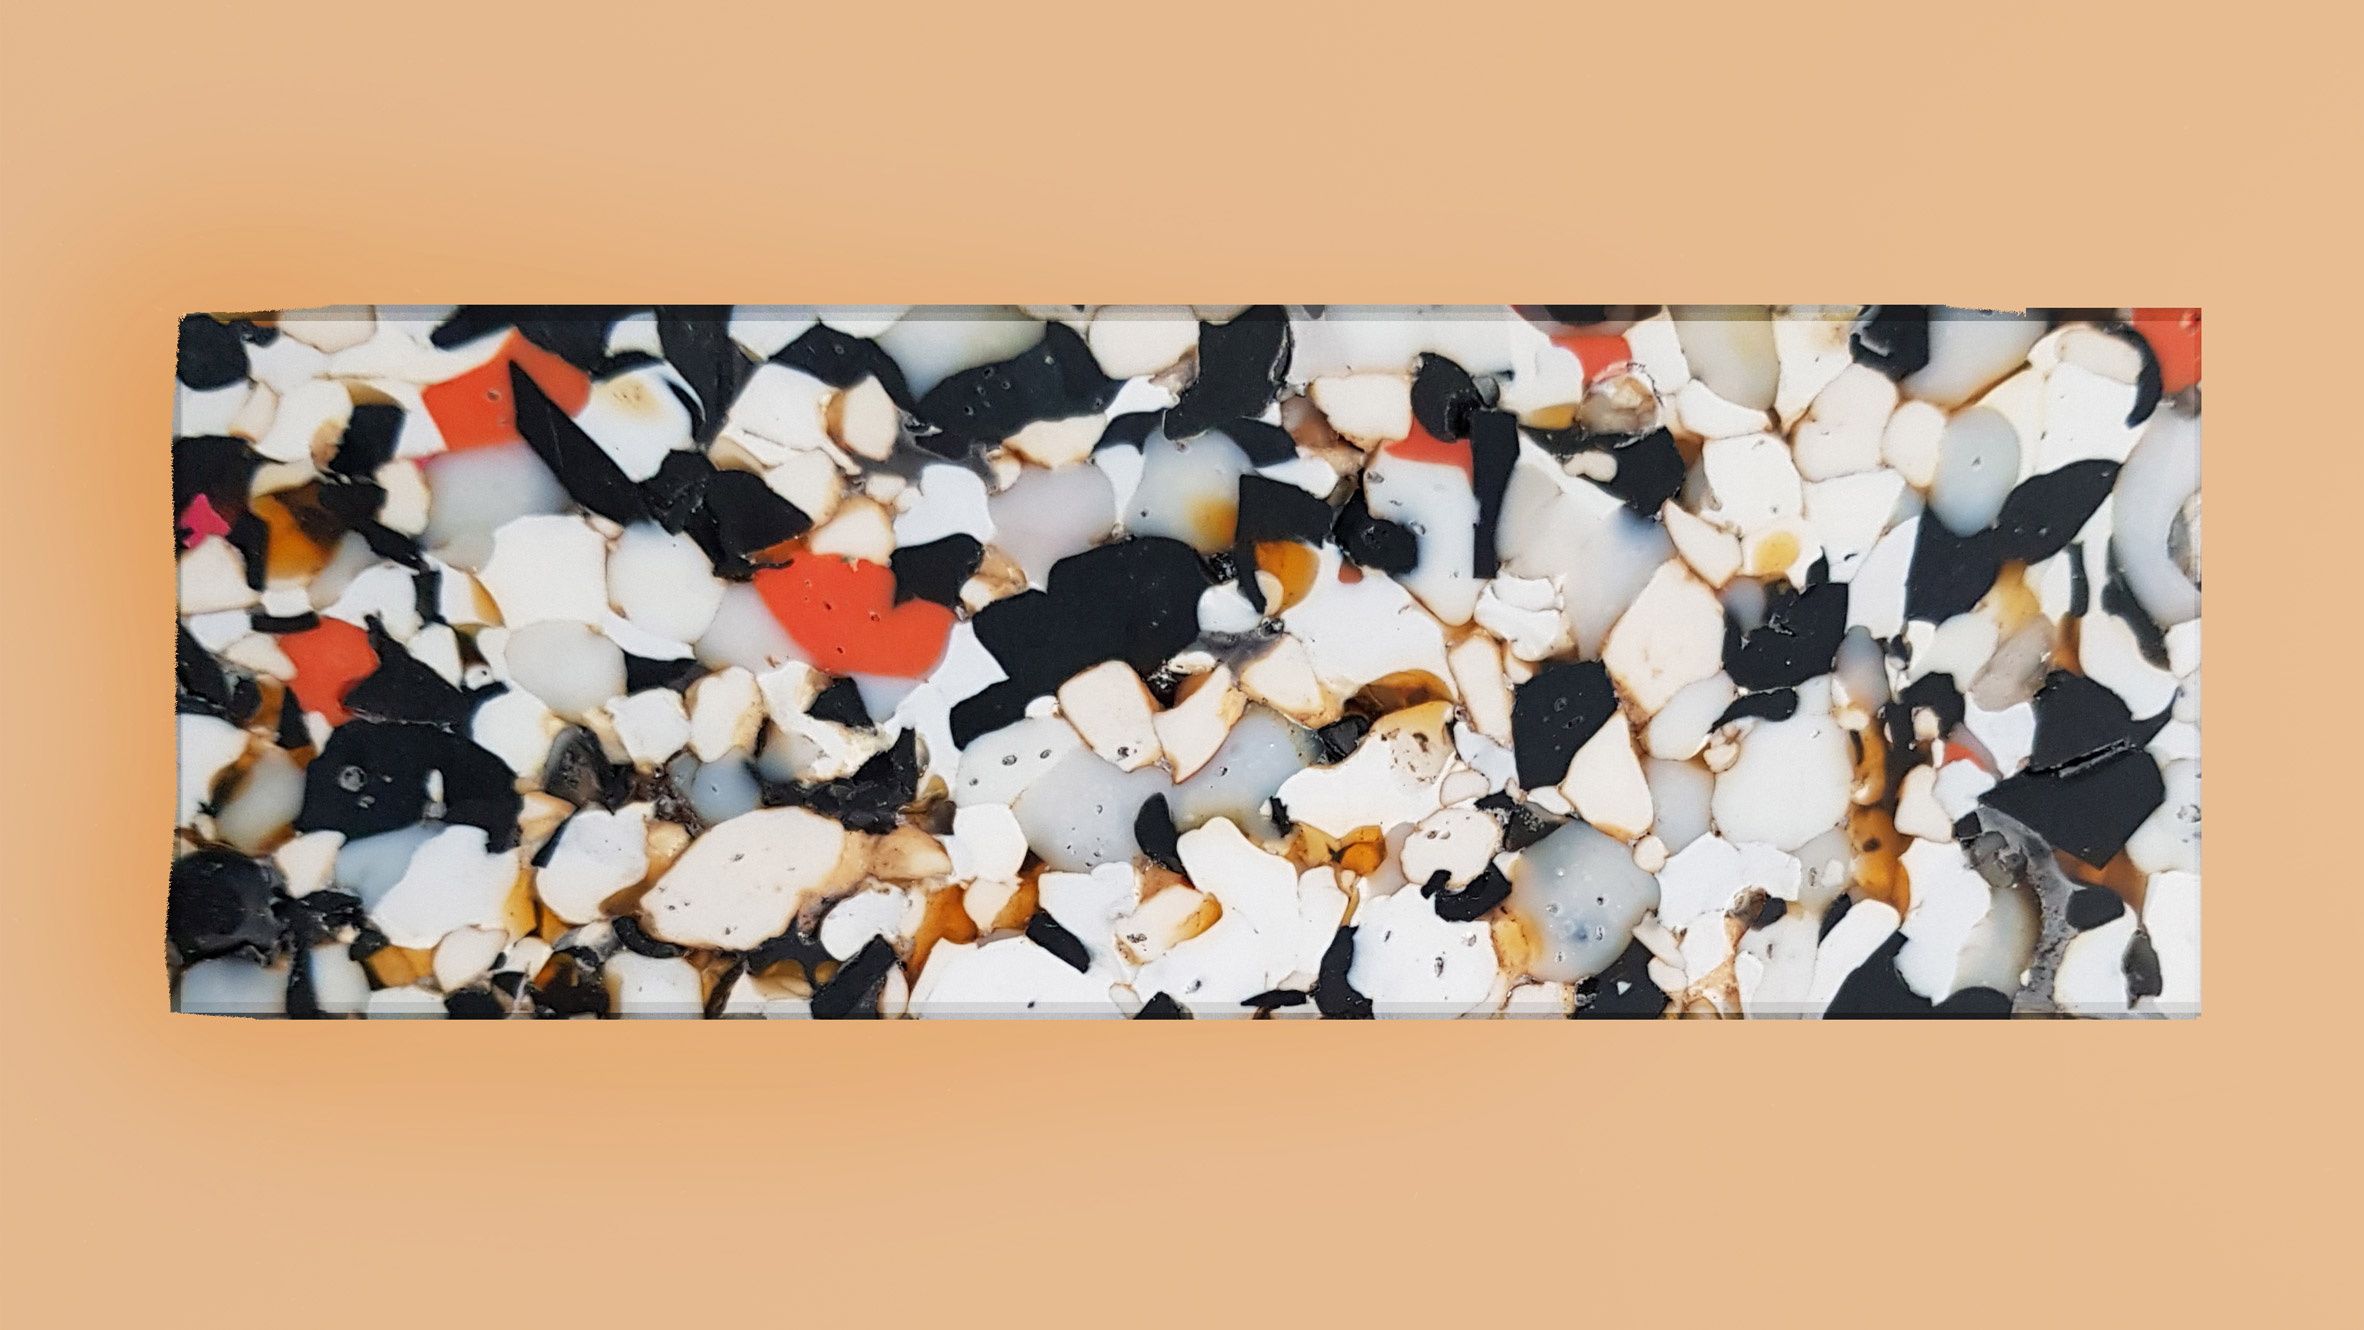 Plasticiet Produces Terrazzo Like Material From Recycled Plastic